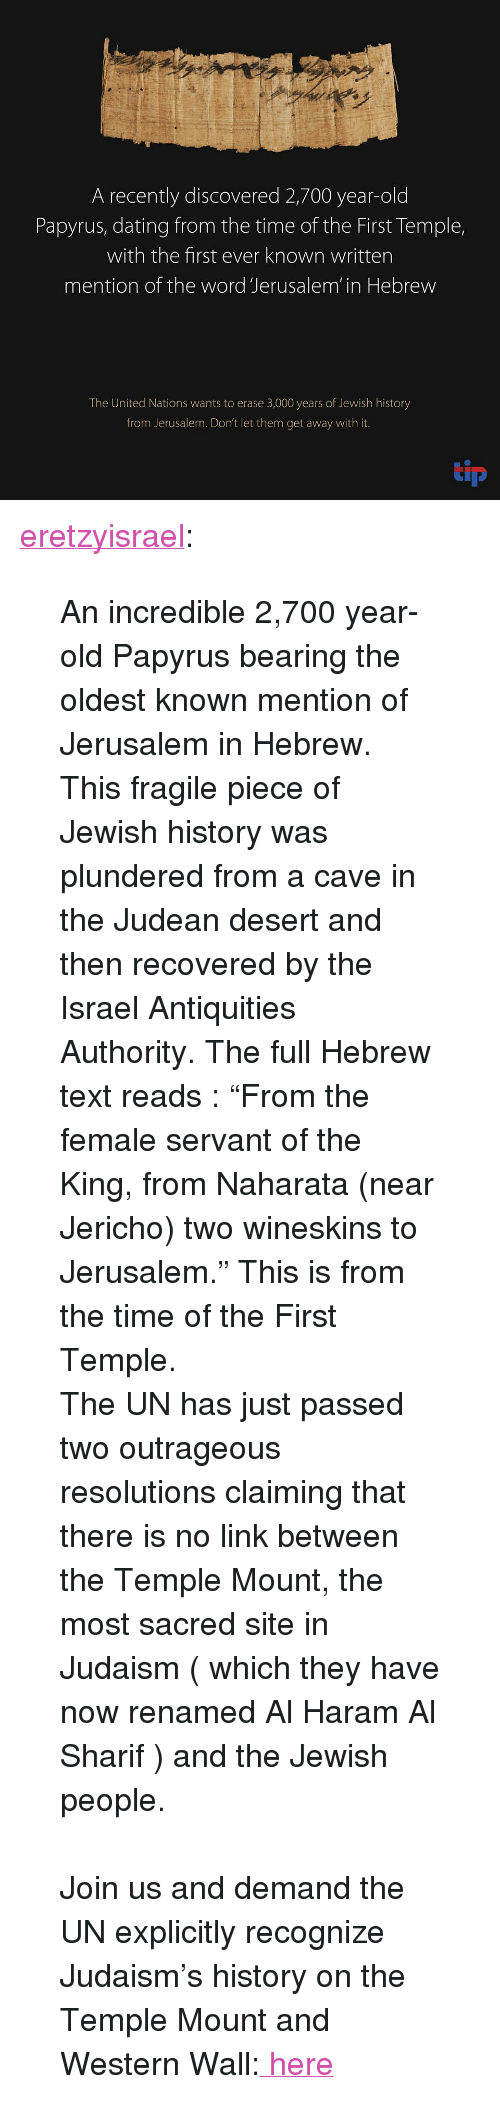 """Dating, Tumblr, and Blog: A recently discovered 2,700 year-old  Papyrus, dating from the time of the First Temple,  with the first ever known written  mention of the word Jerusalem' in Hebrew  The United Nations wants to erase 3,000 years of Jewish history  from Jerusalem. Don't let them get away with it.  tip <p><a class=""""tumblr_blog"""" href=""""http://eretzyisrael.tumblr.com/post/152396180252"""">eretzyisrael</a>:</p> <blockquote> <p>An incredible 2,700 year-old Papyrus bearing the oldest known mention of Jerusalem in Hebrew. This fragile piece of Jewish history was plundered from a cave in the Judean desert and then recovered by the Israel Antiquities Authority. The full Hebrew text reads : """"From the female servant of the King, from Naharata (near Jericho) two wineskins to Jerusalem."""" This is from the time of the First Temple.<br/>The UN has just passed two outrageous resolutions claiming that there is no link between the Temple Mount, the most sacred site in Judaism ( which they have now renamed Al Haram Al Sharif ) and the Jewish people.</p> <p><br/>Join us and demand the UN explicitly recognize Judaism's history on the Temple Mount and Western Wall:<a href=""""http://tip.nationbuilder.com/unesco""""> here</a></p> </blockquote>"""